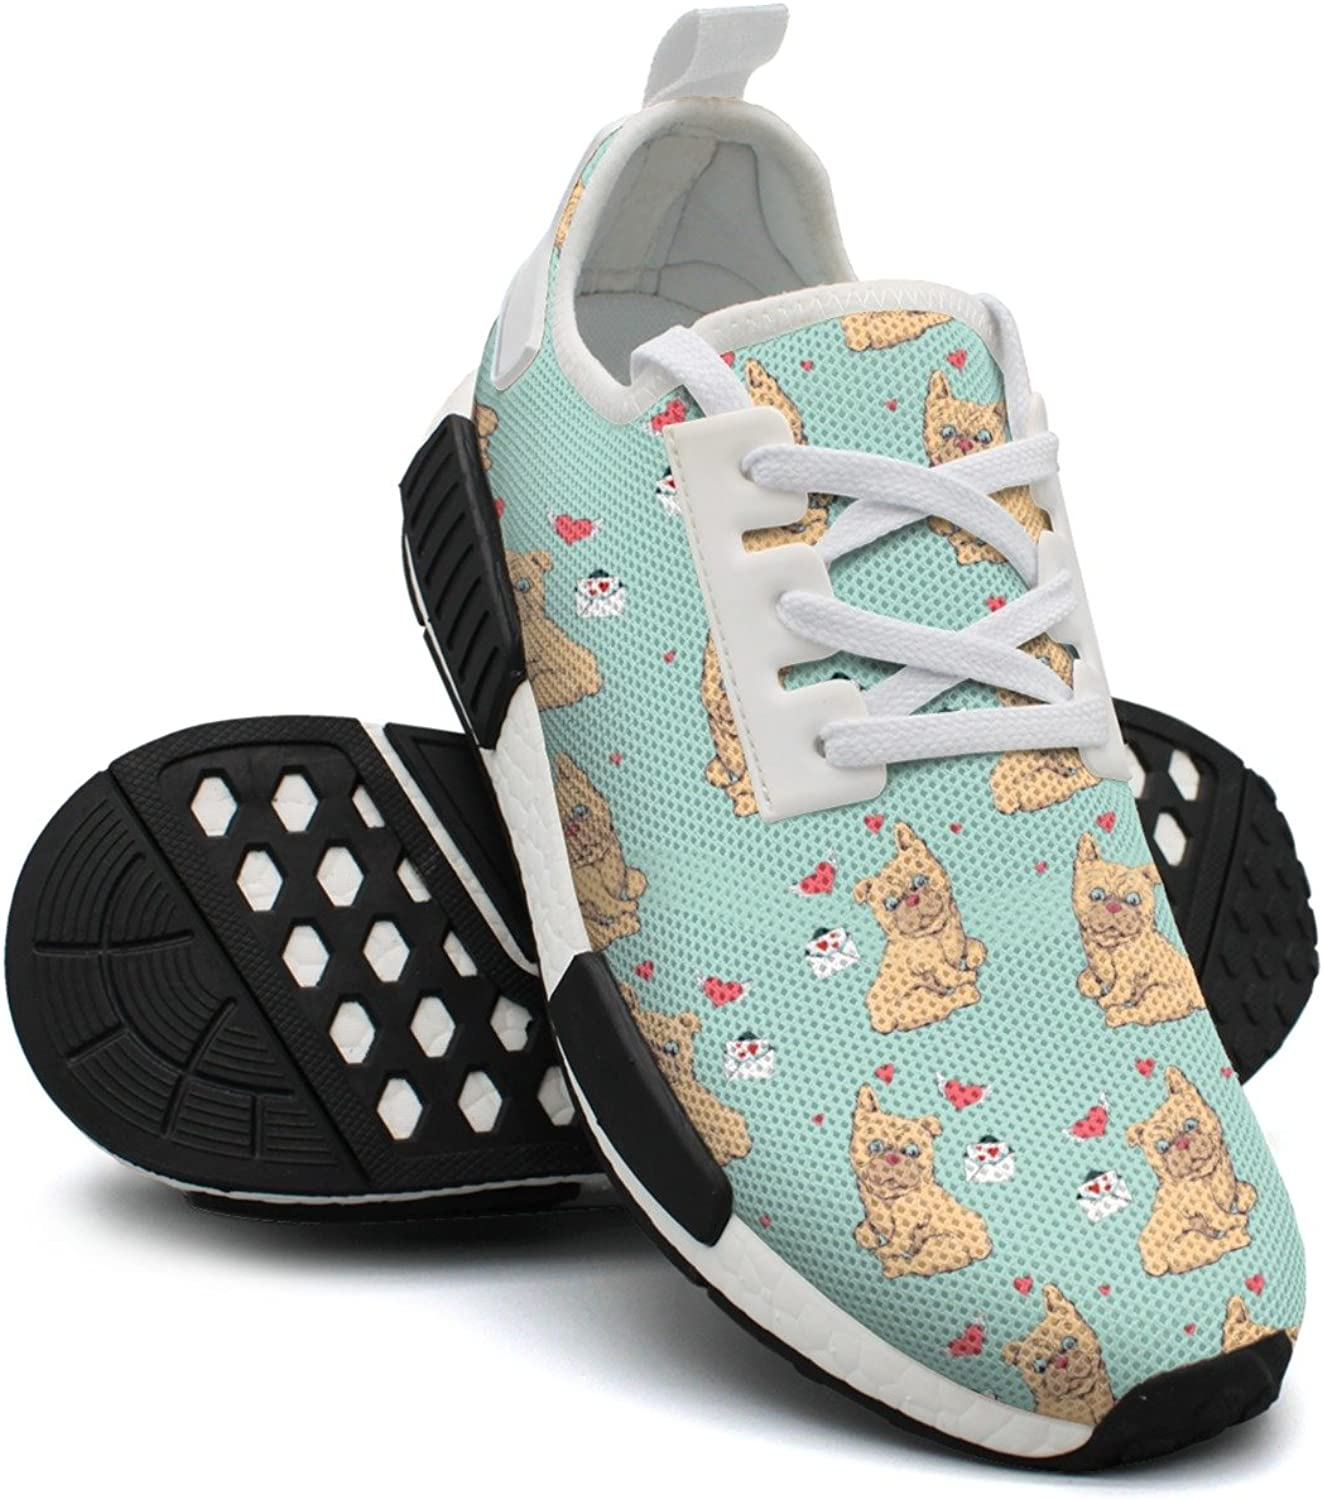 Ououla Dogs And Hearts Women Funny NMD PK Trail Runners shoes